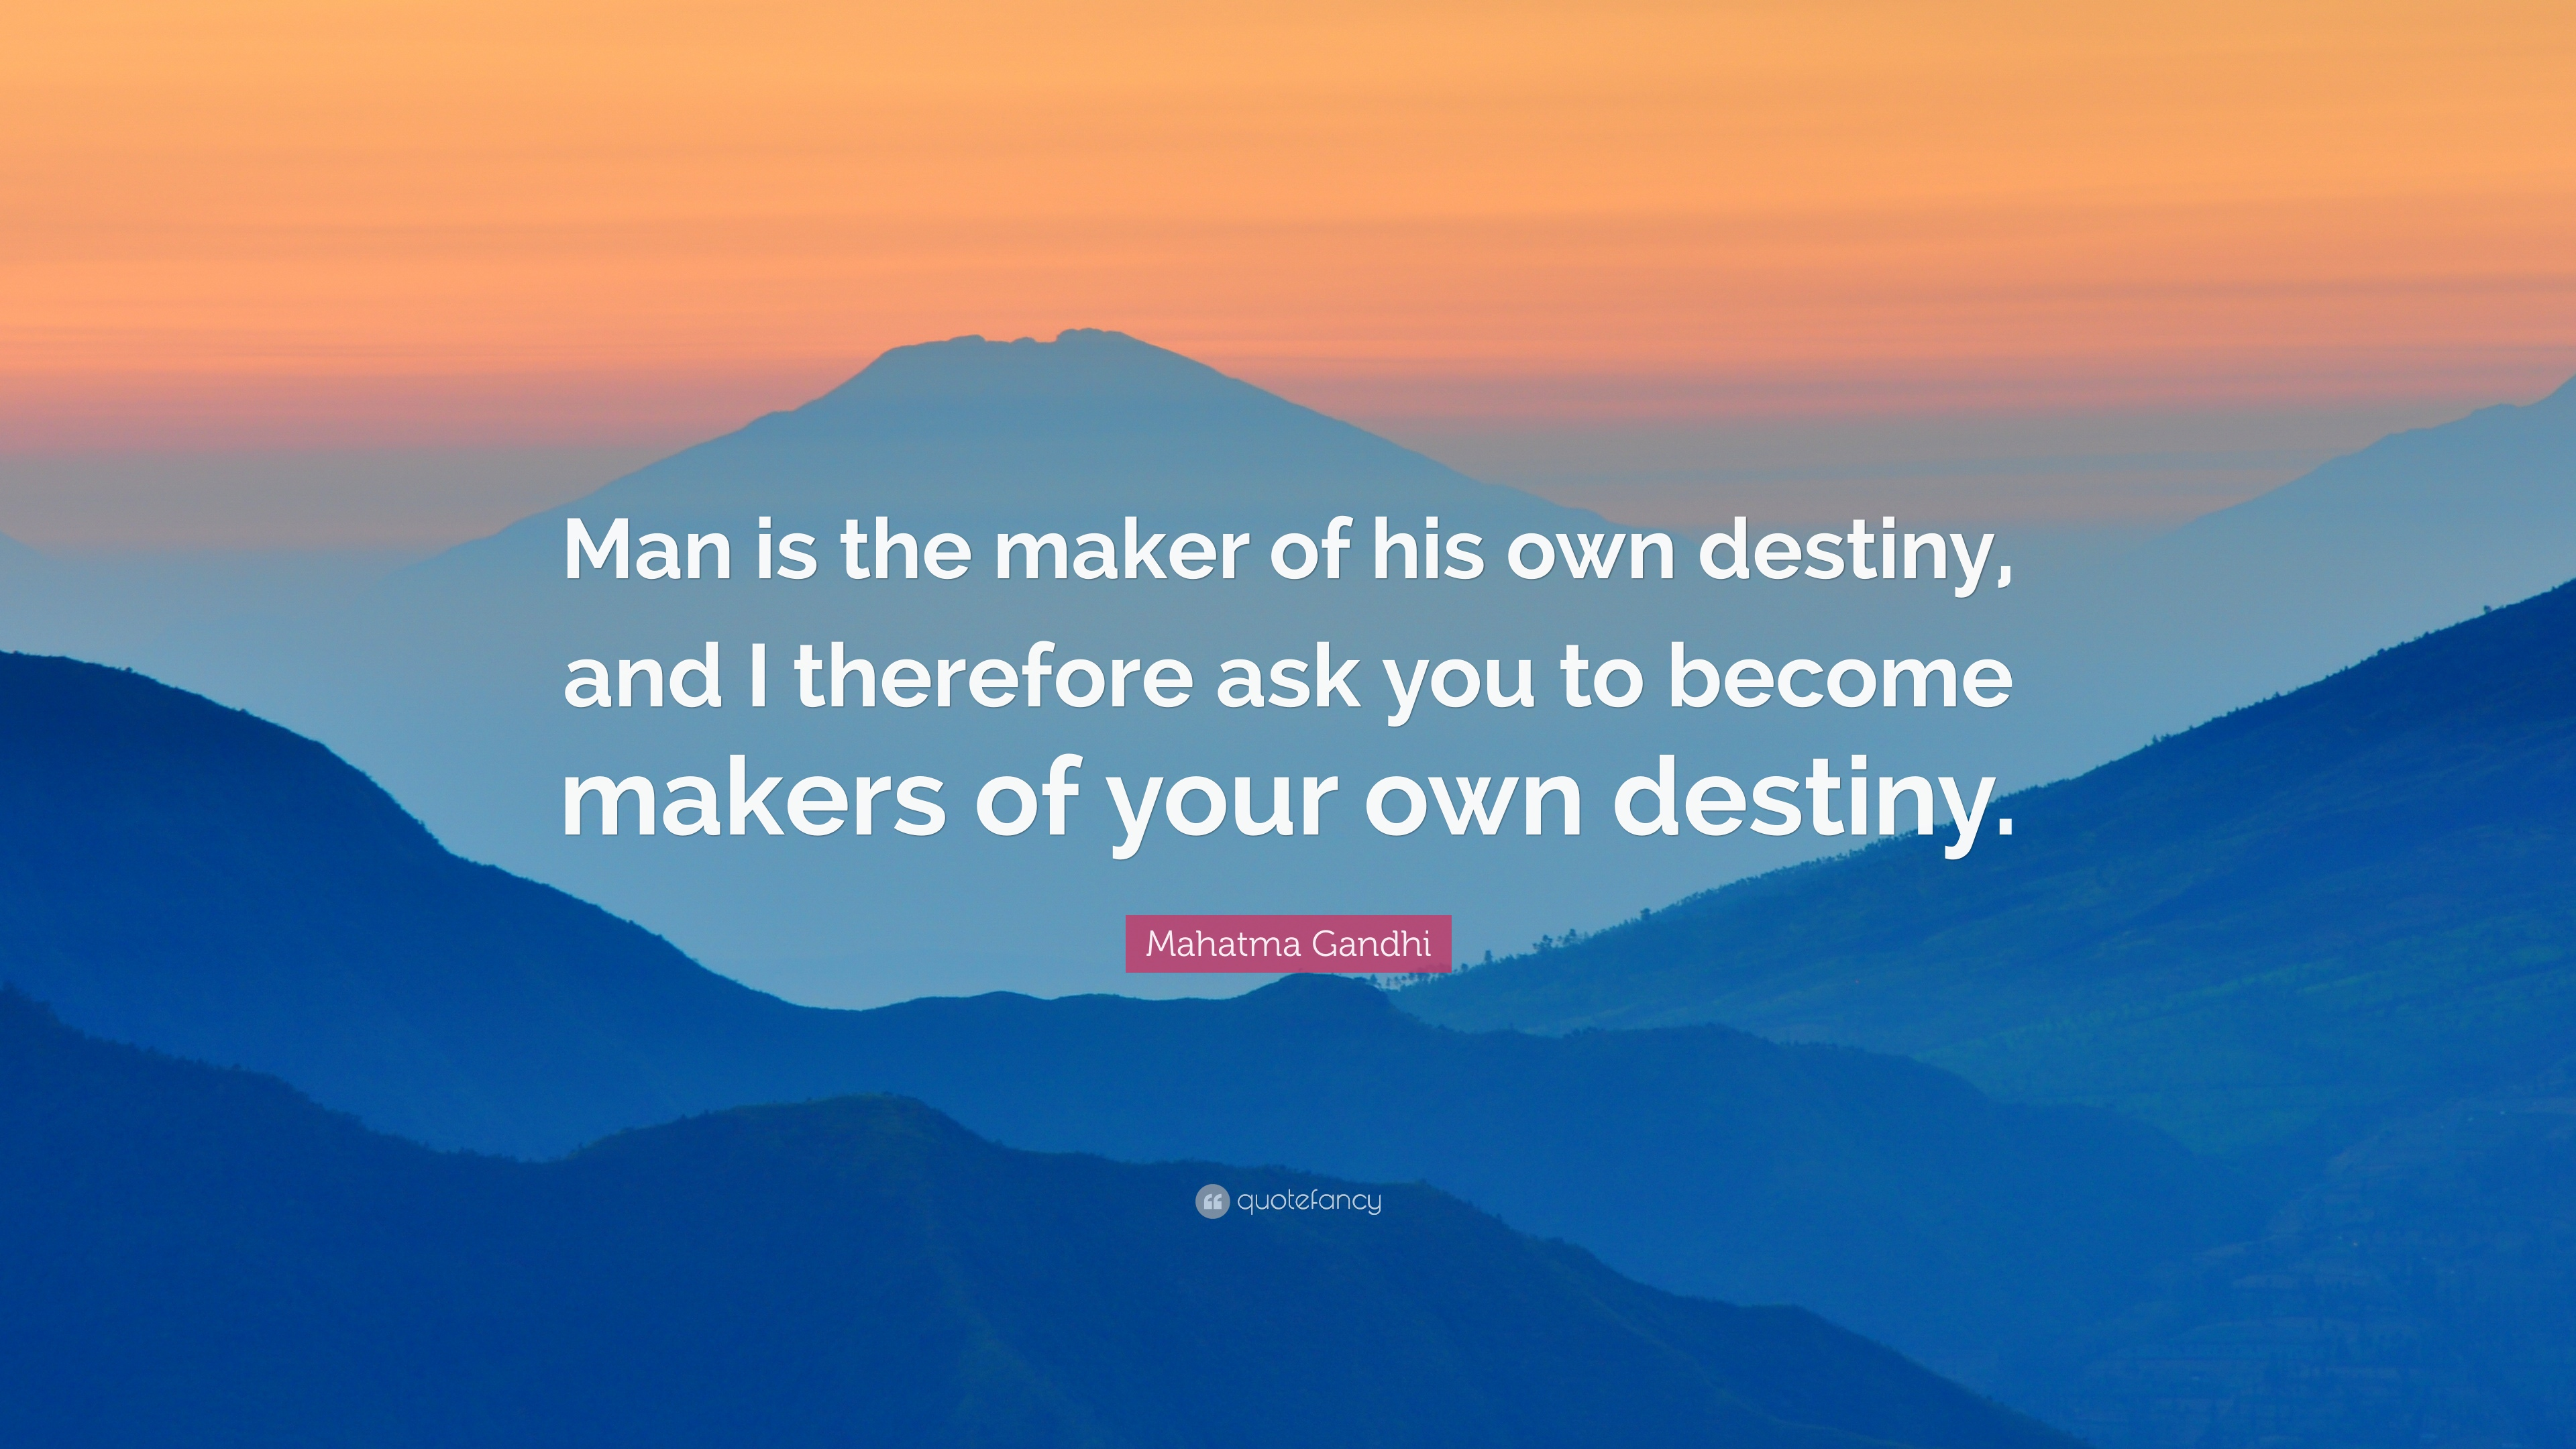 Image of: Build Mahatma Gandhi Quote man Is The Maker Of His Own Destiny And Myquotepixcom Mahatma Gandhi Quote man Is The Maker Of His Own Destiny And